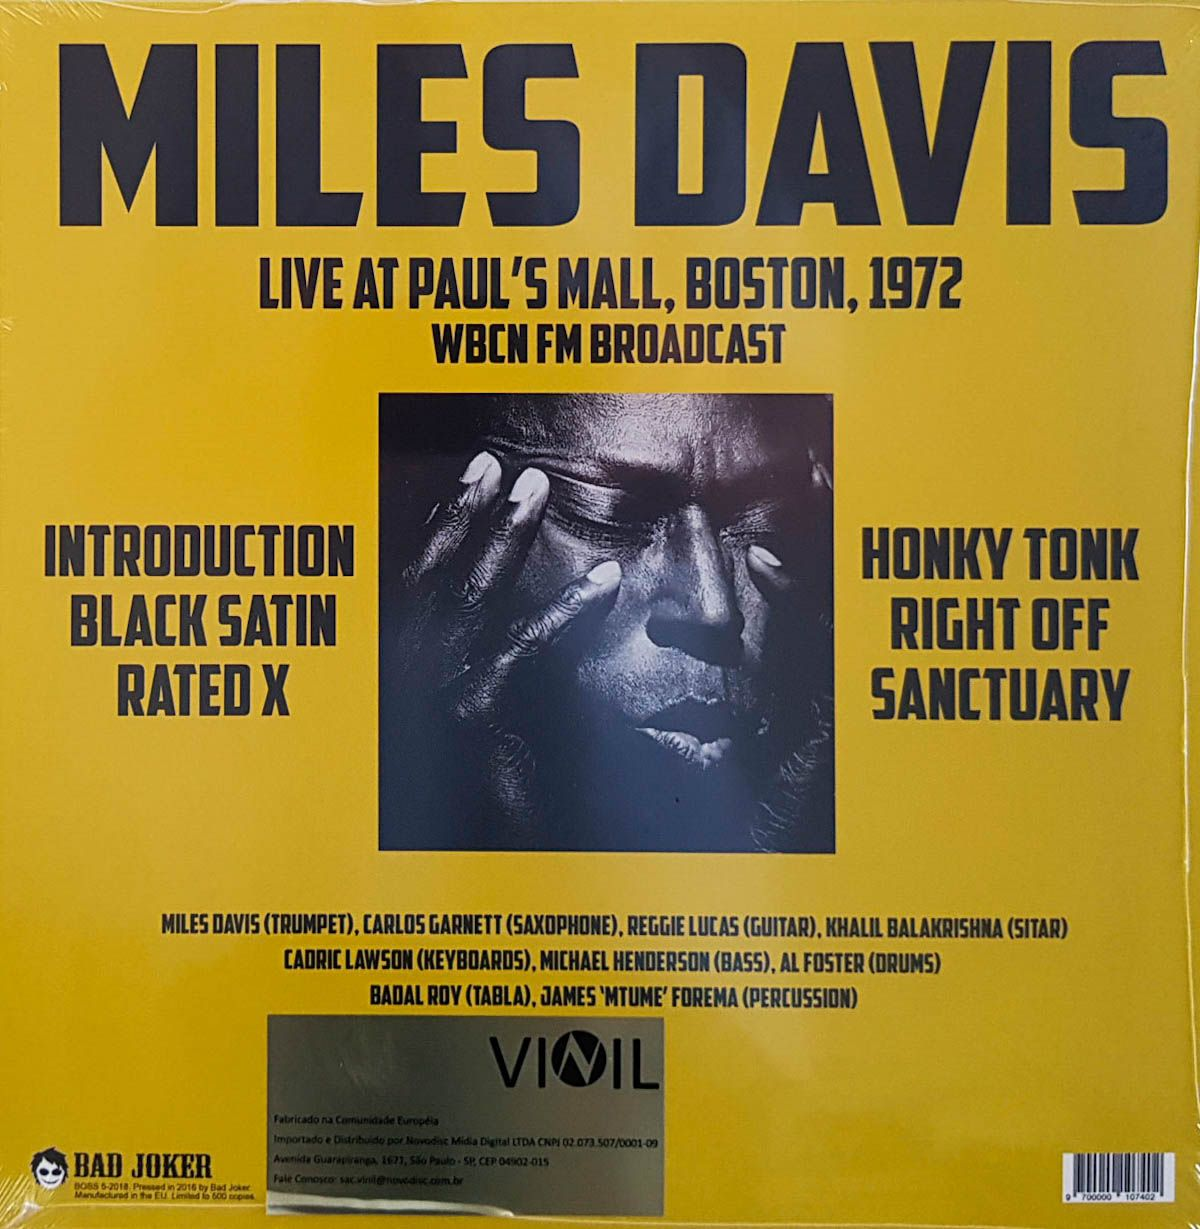 Lp Vinil Miles Davis Paul's Mall Boston 1972 Fm Broadcast